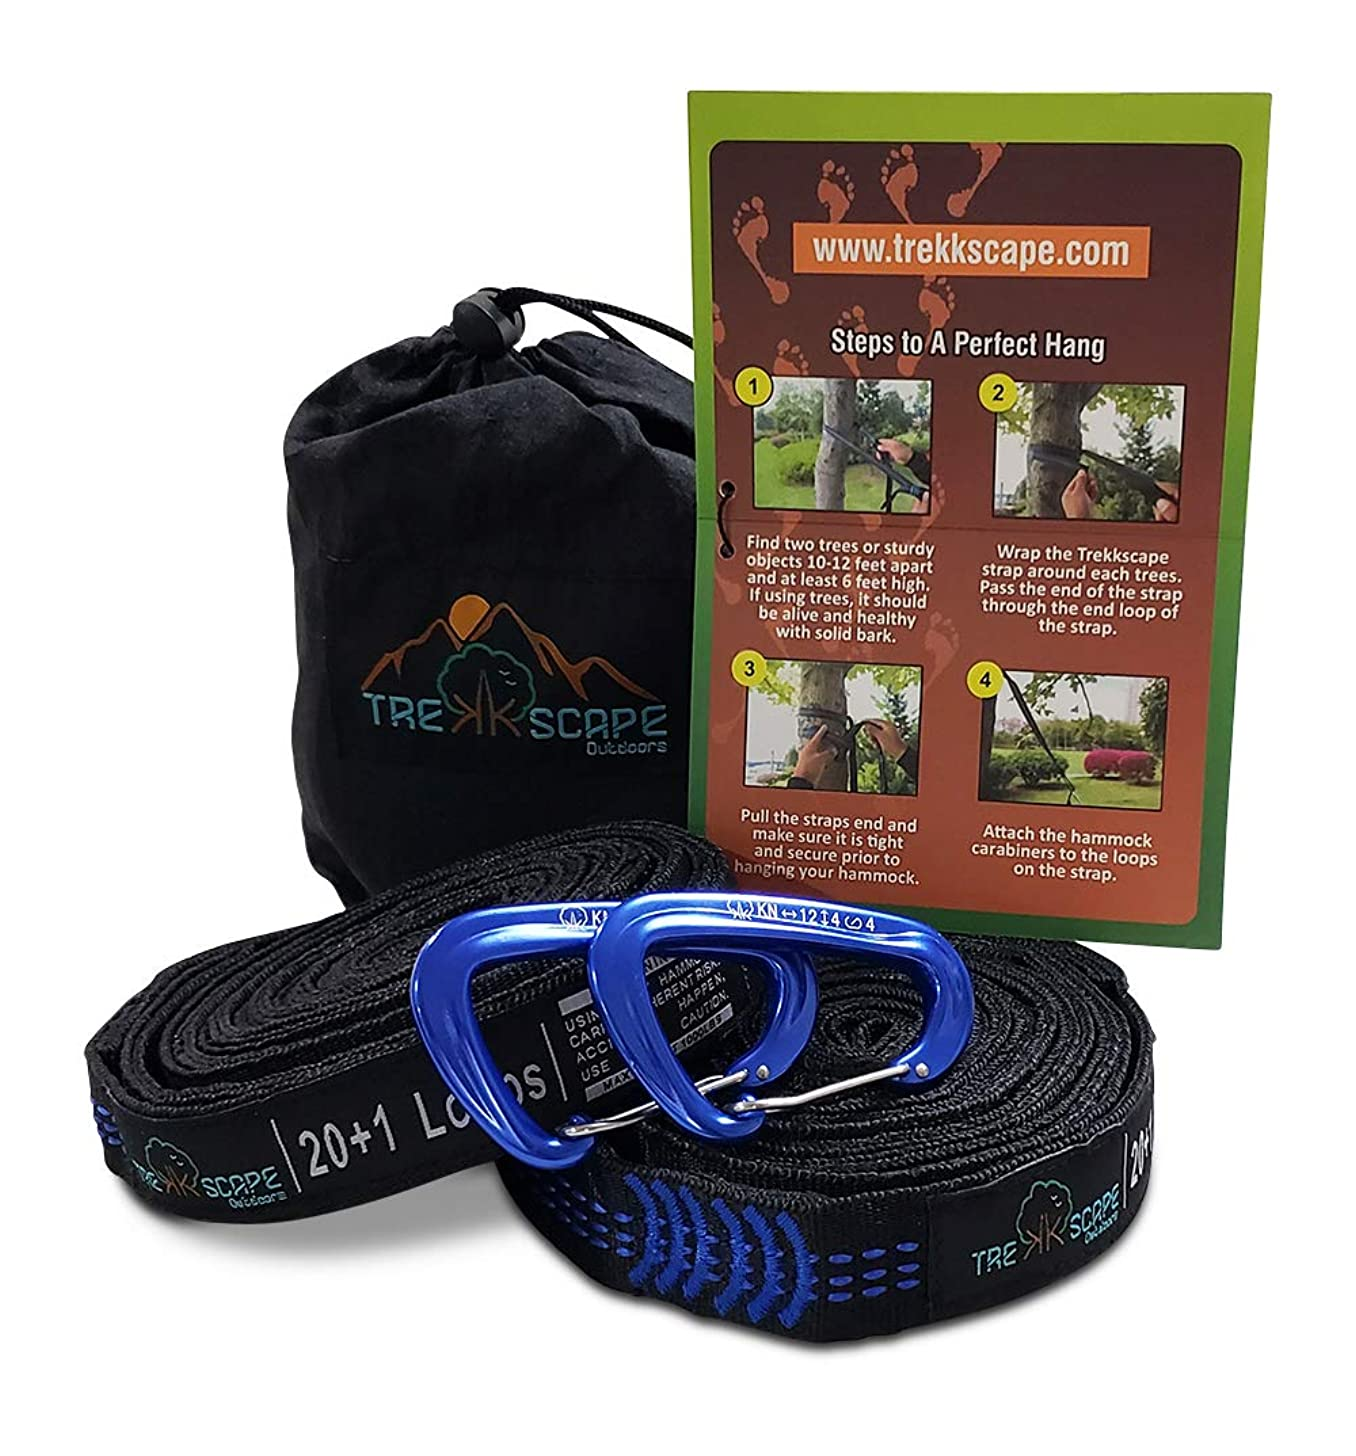 Trekkscape Hammock Straps XL - Camping Hammock Tree Straps Set with 2 12kN Carabiners & Bag, 20Ft Long Combined, 40+2 Loops, 2000 LBS No-Stretch, Heavy Duty Straps for Portable Hammock, Quick Setup